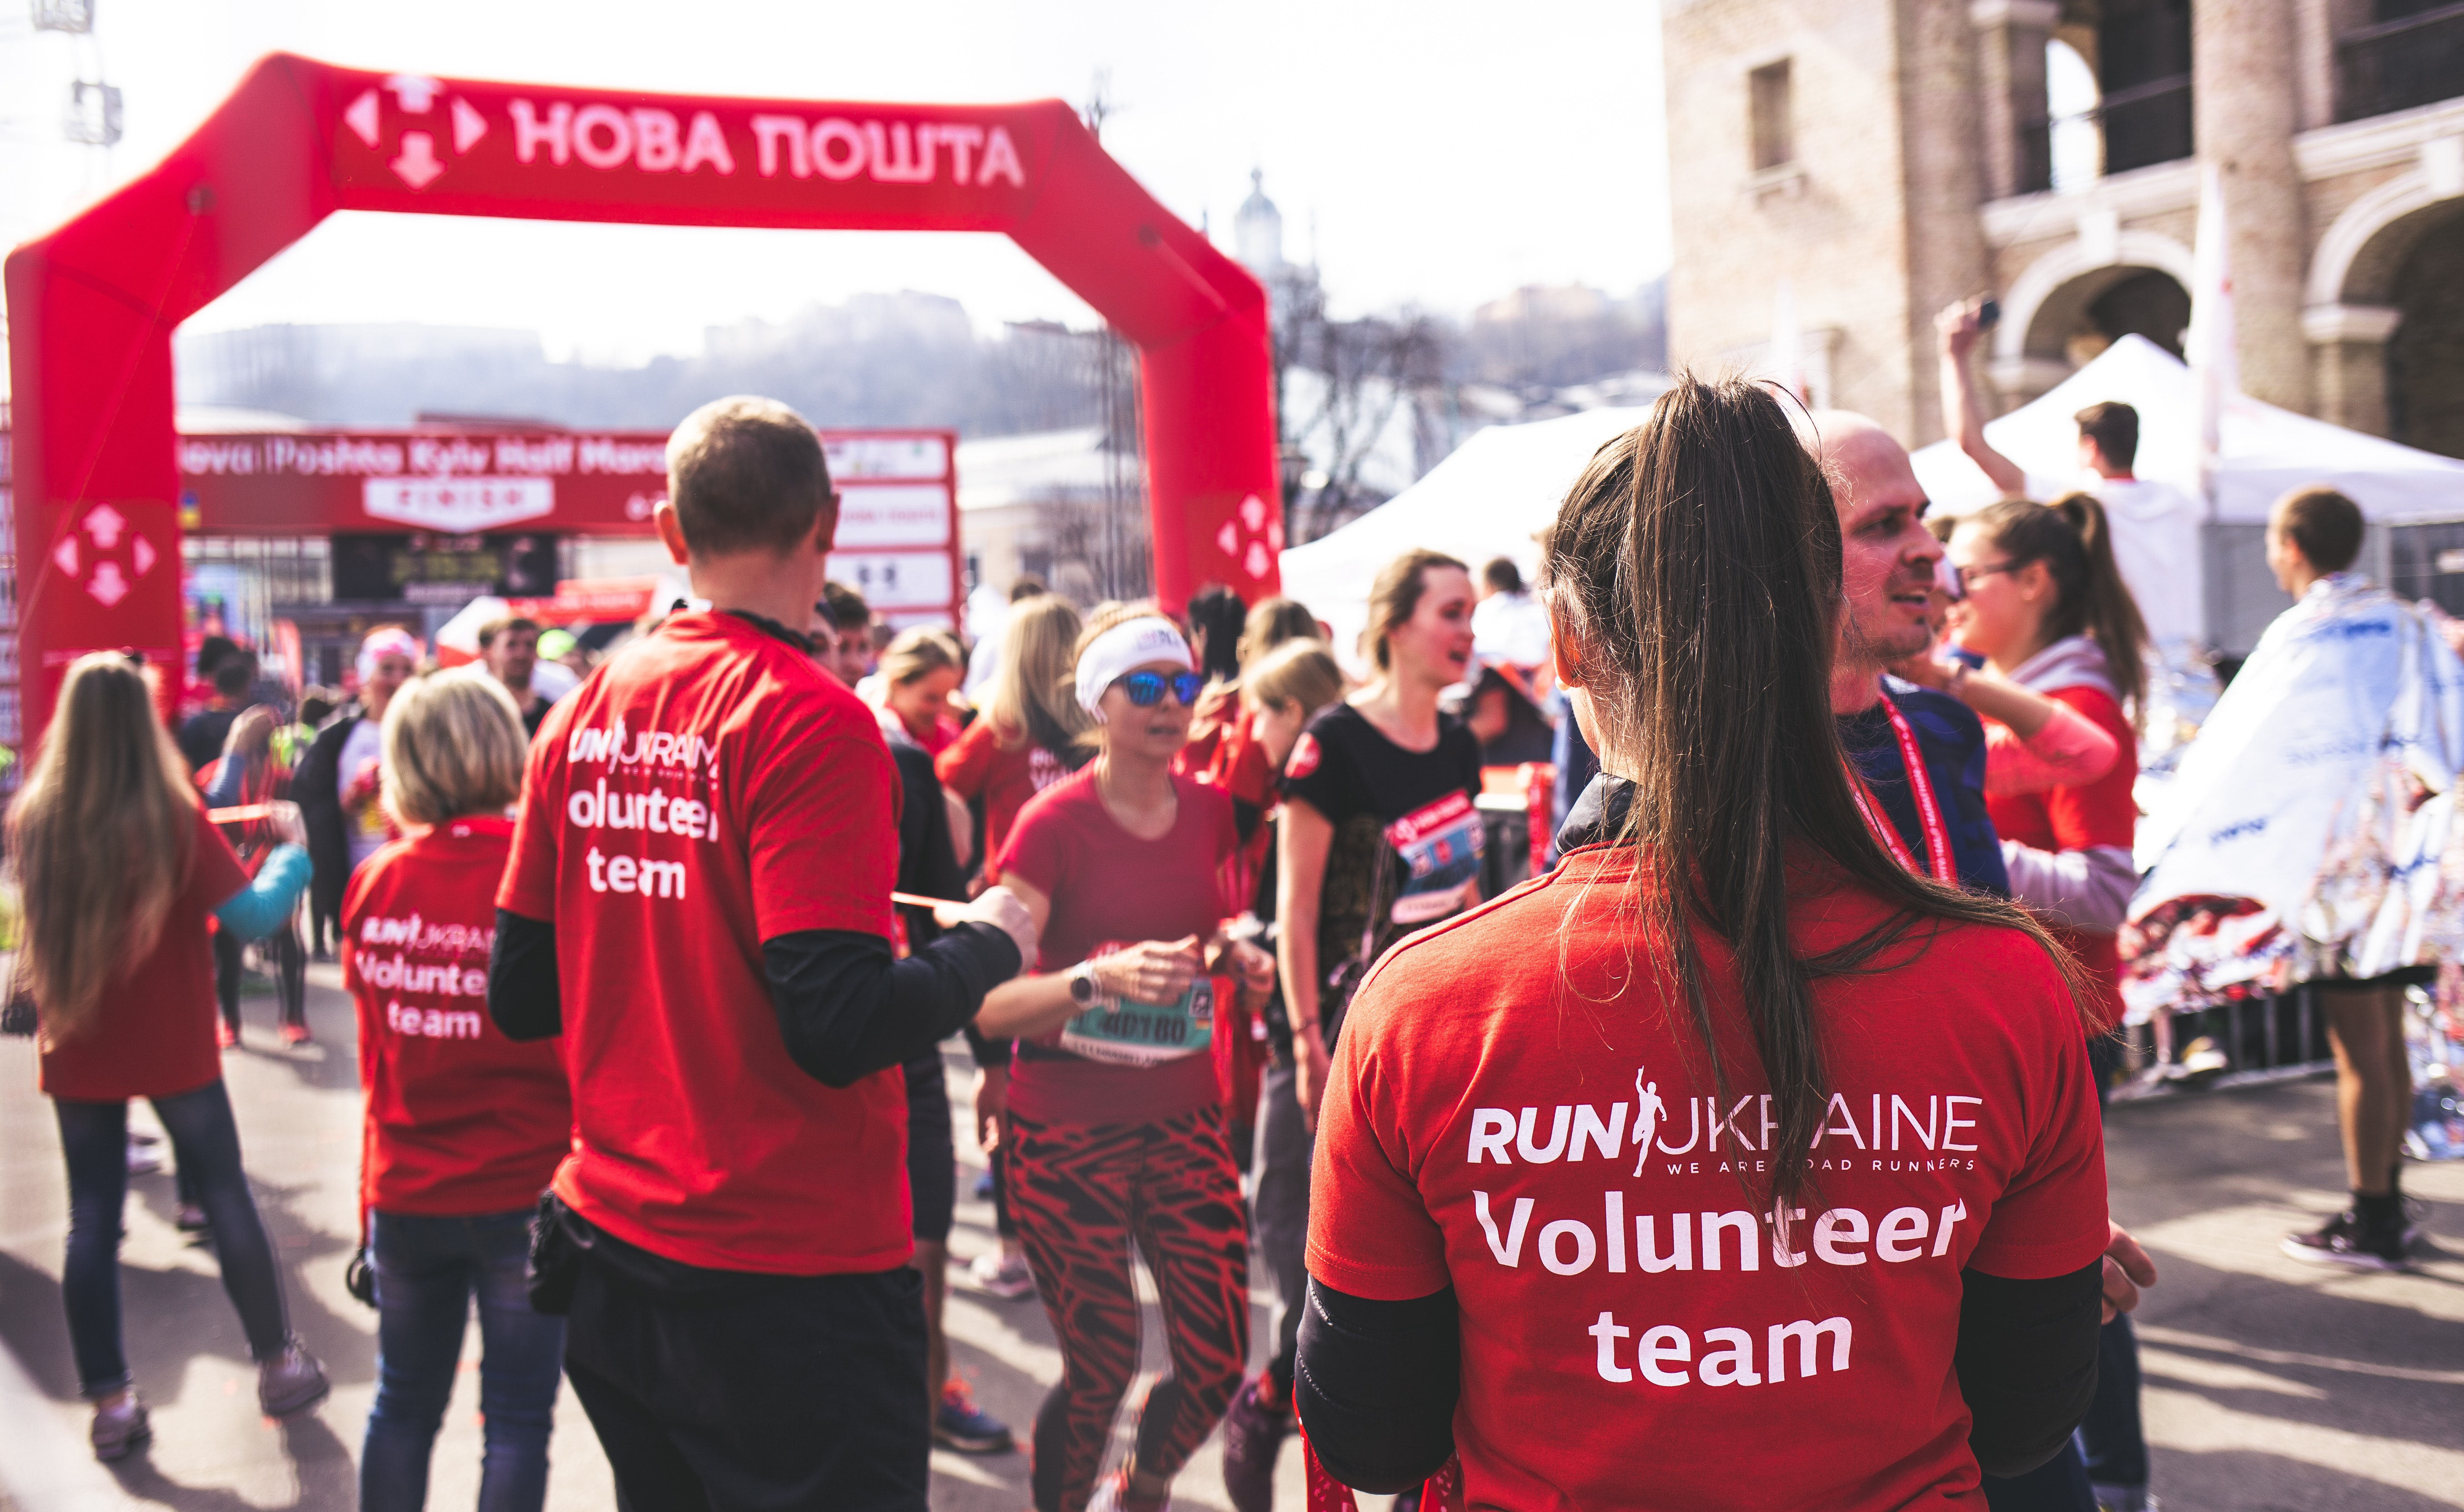 The Best Ways to Volunteer This Year - Sarah Laud